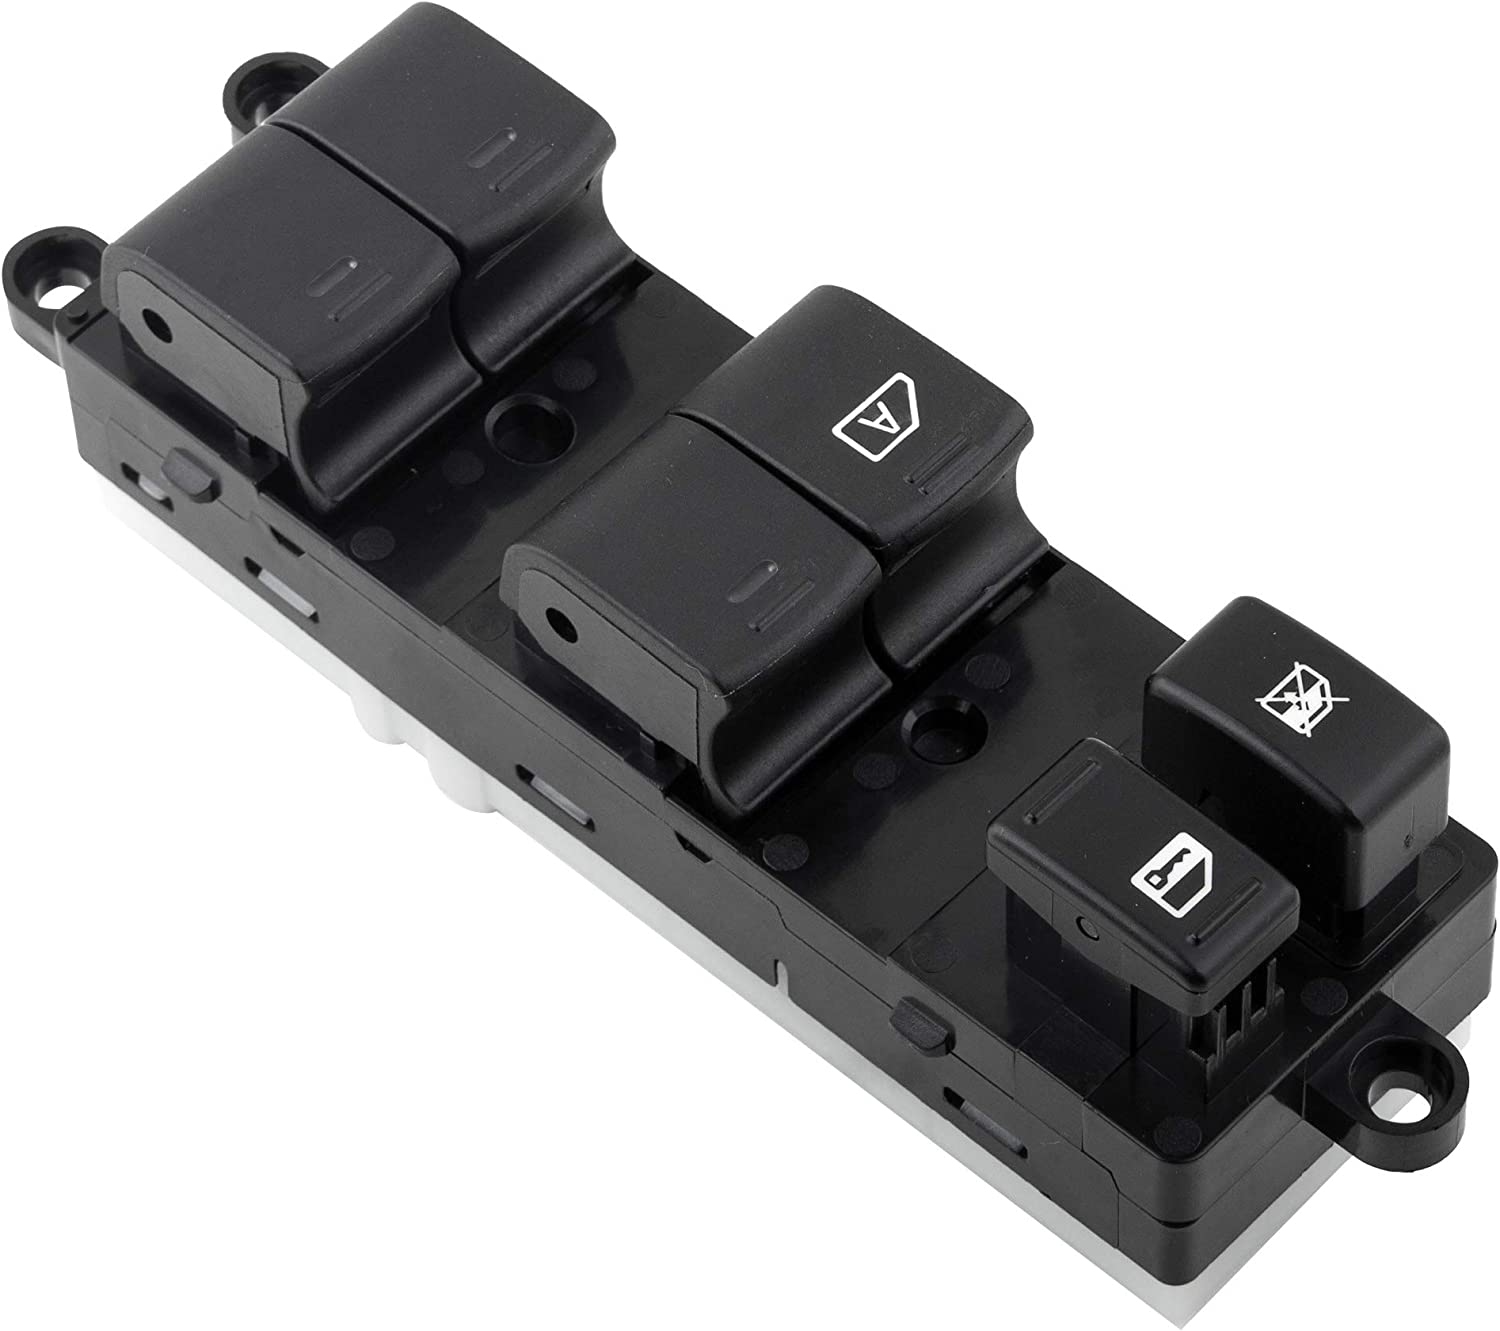 BOXI Front Left Driver Side Power Window Master Control Switch fits for 2005 2006 2007 Nissan Pathfinder Replaces 25401-ZP40B,25401-9W100